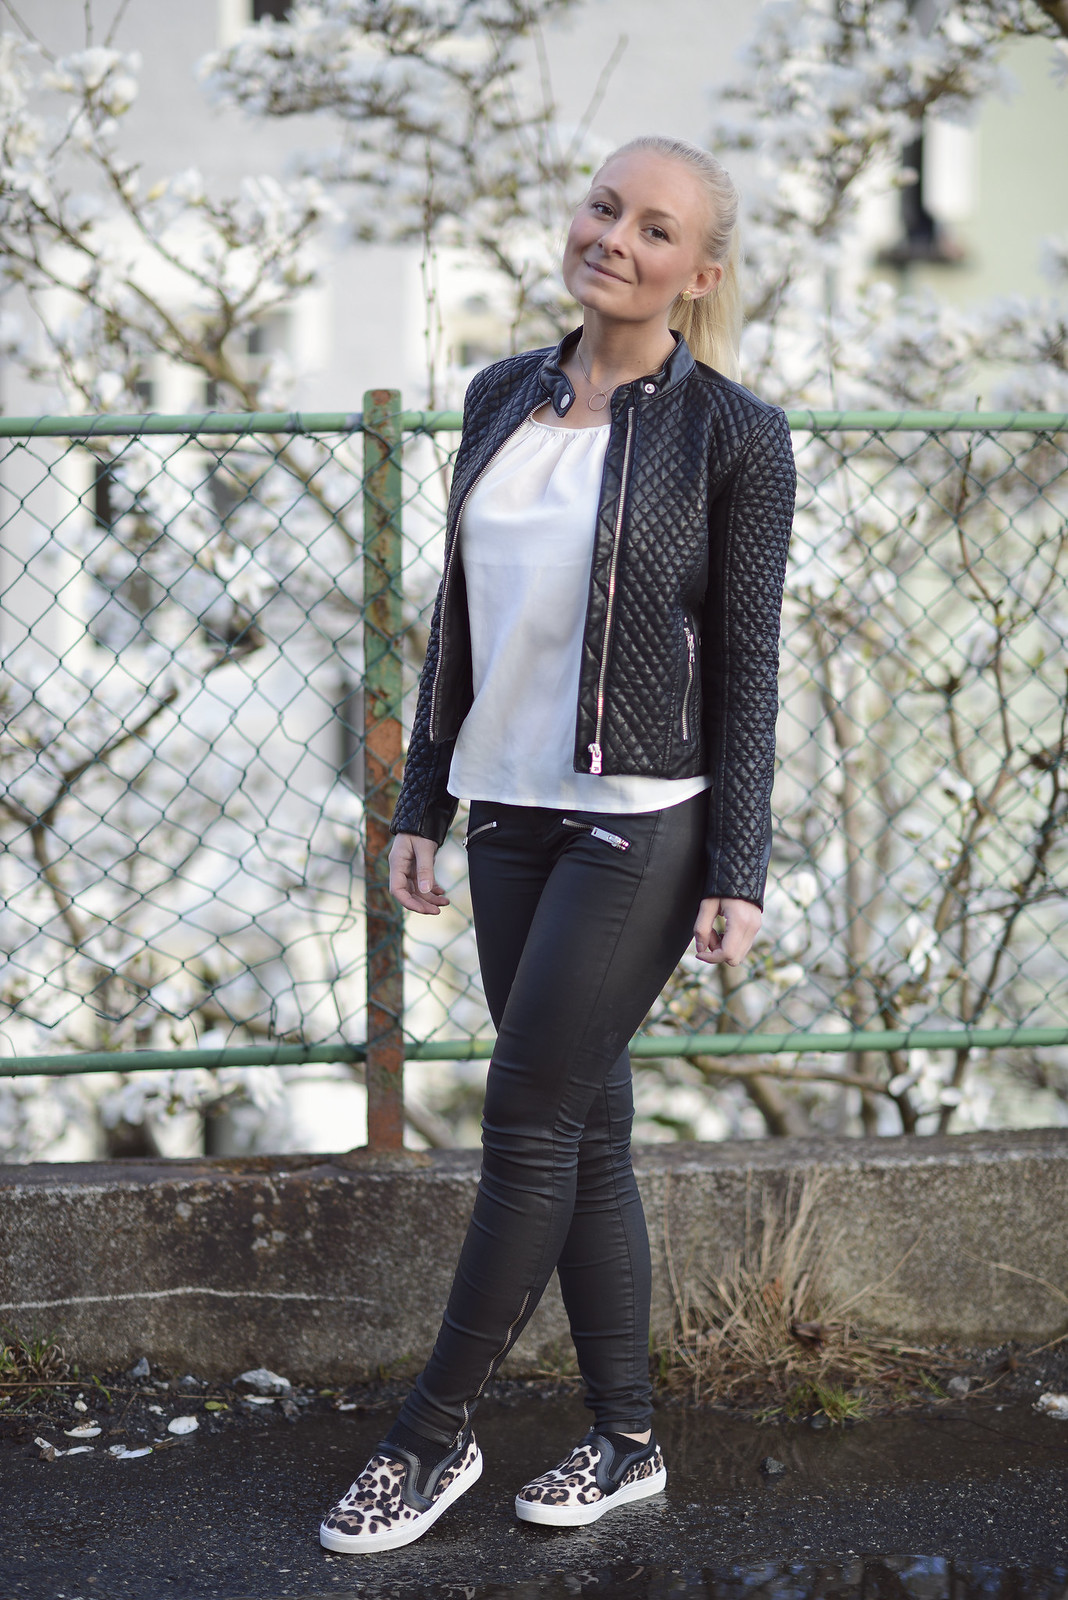 26apr.2015_Outfit_5564f